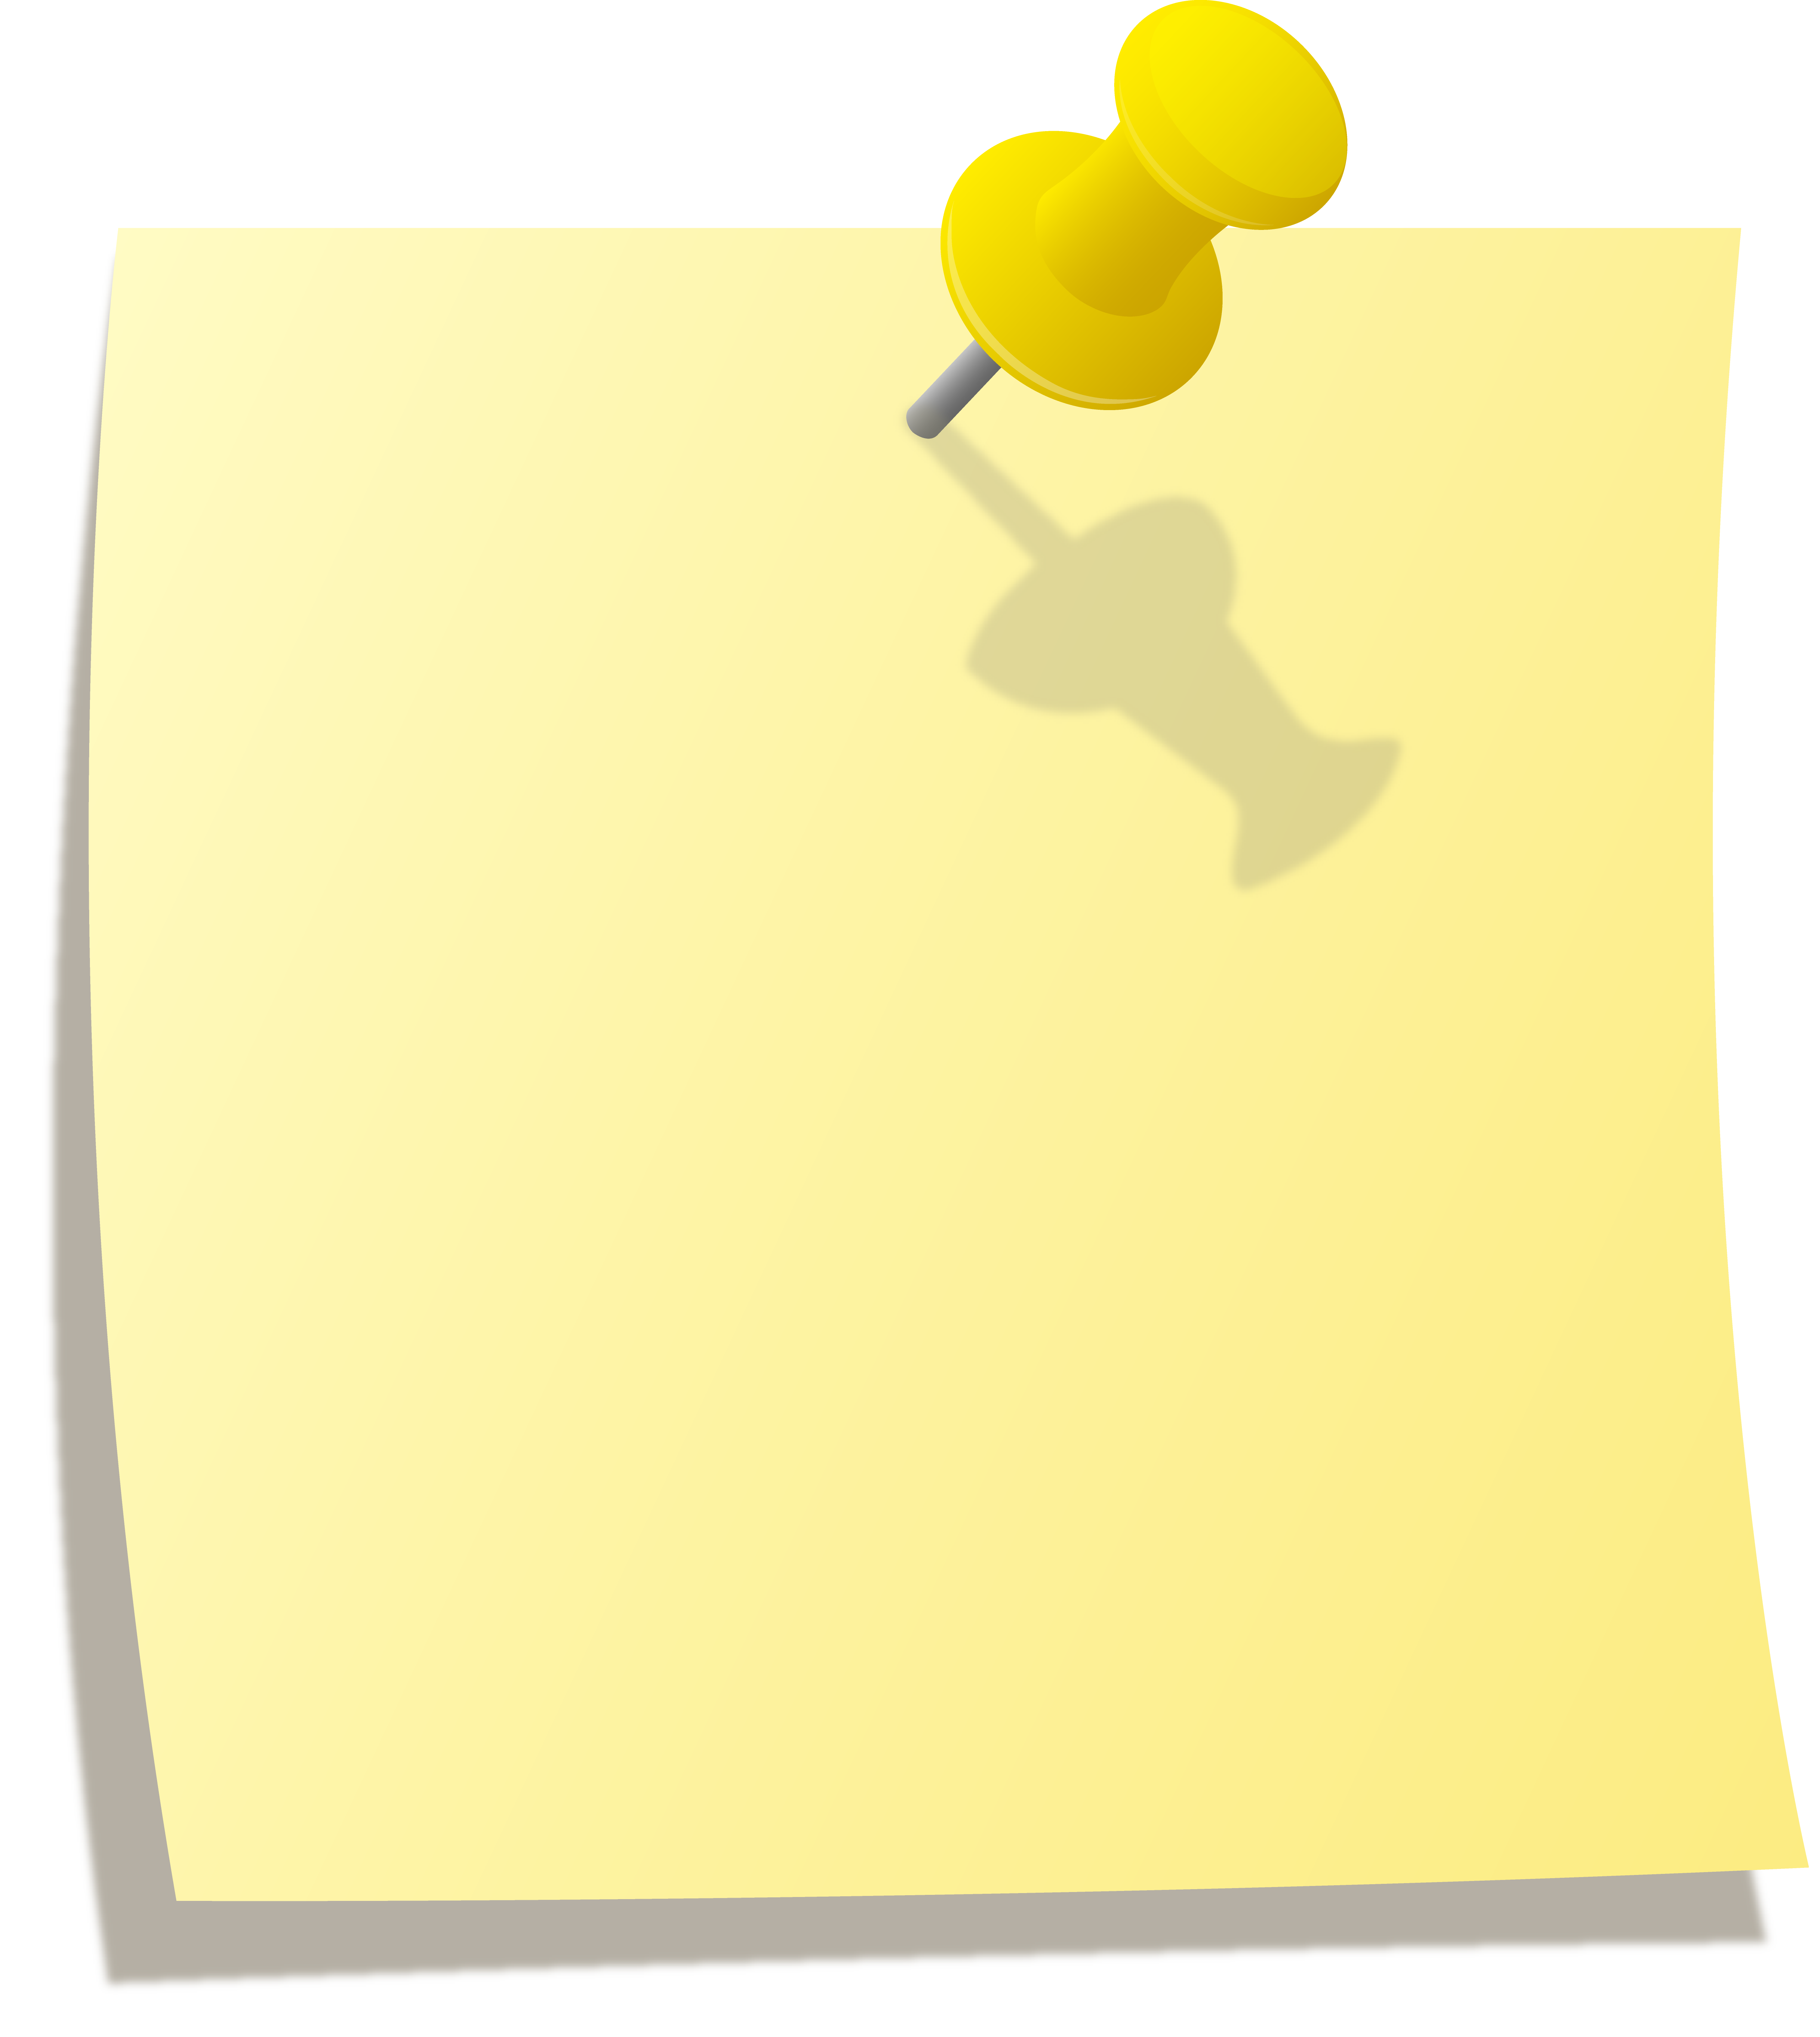 Yellow wall clipart - Clipground